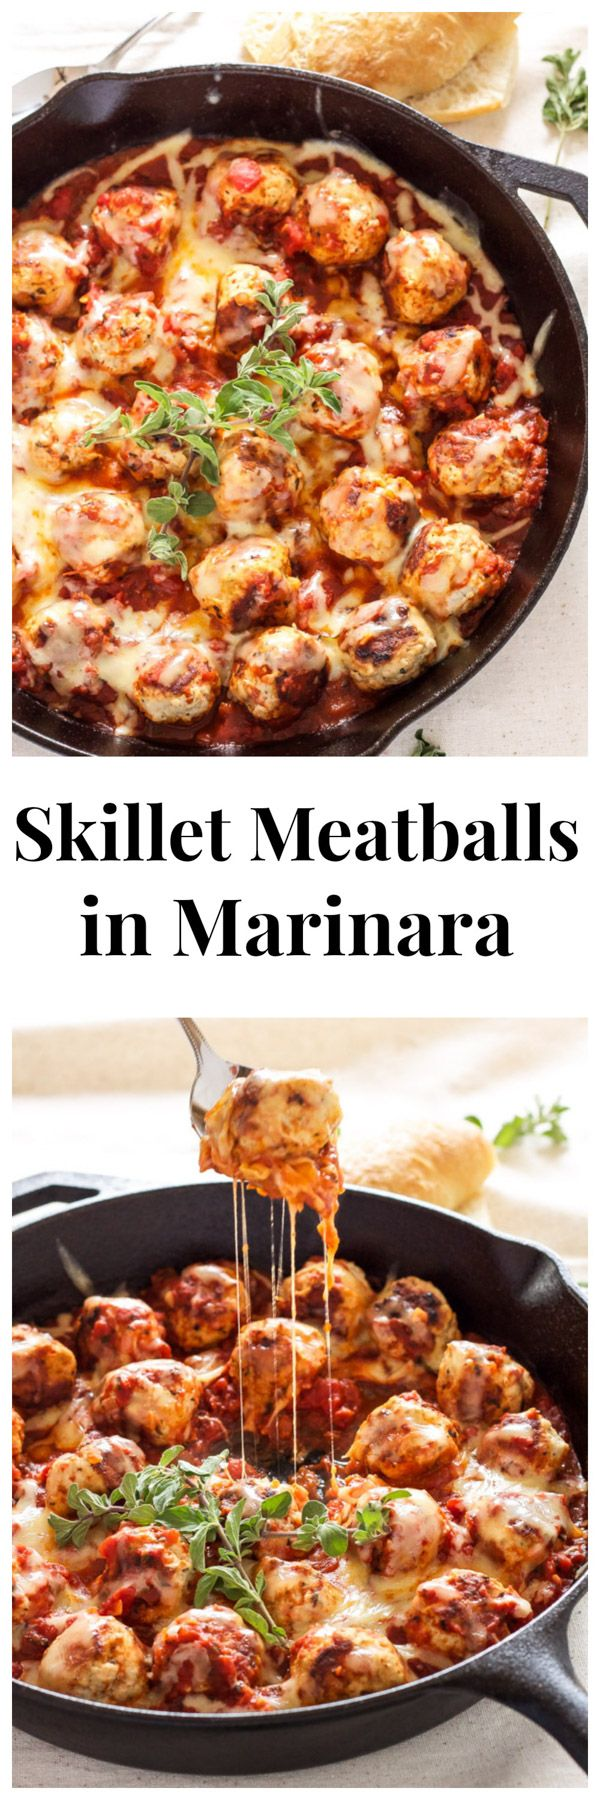 Skillet Meatballs in Marinara   Meatballs stuffed with mozzarella and simmered in marinara sauce. An easy one pan meal!   @reciperunner